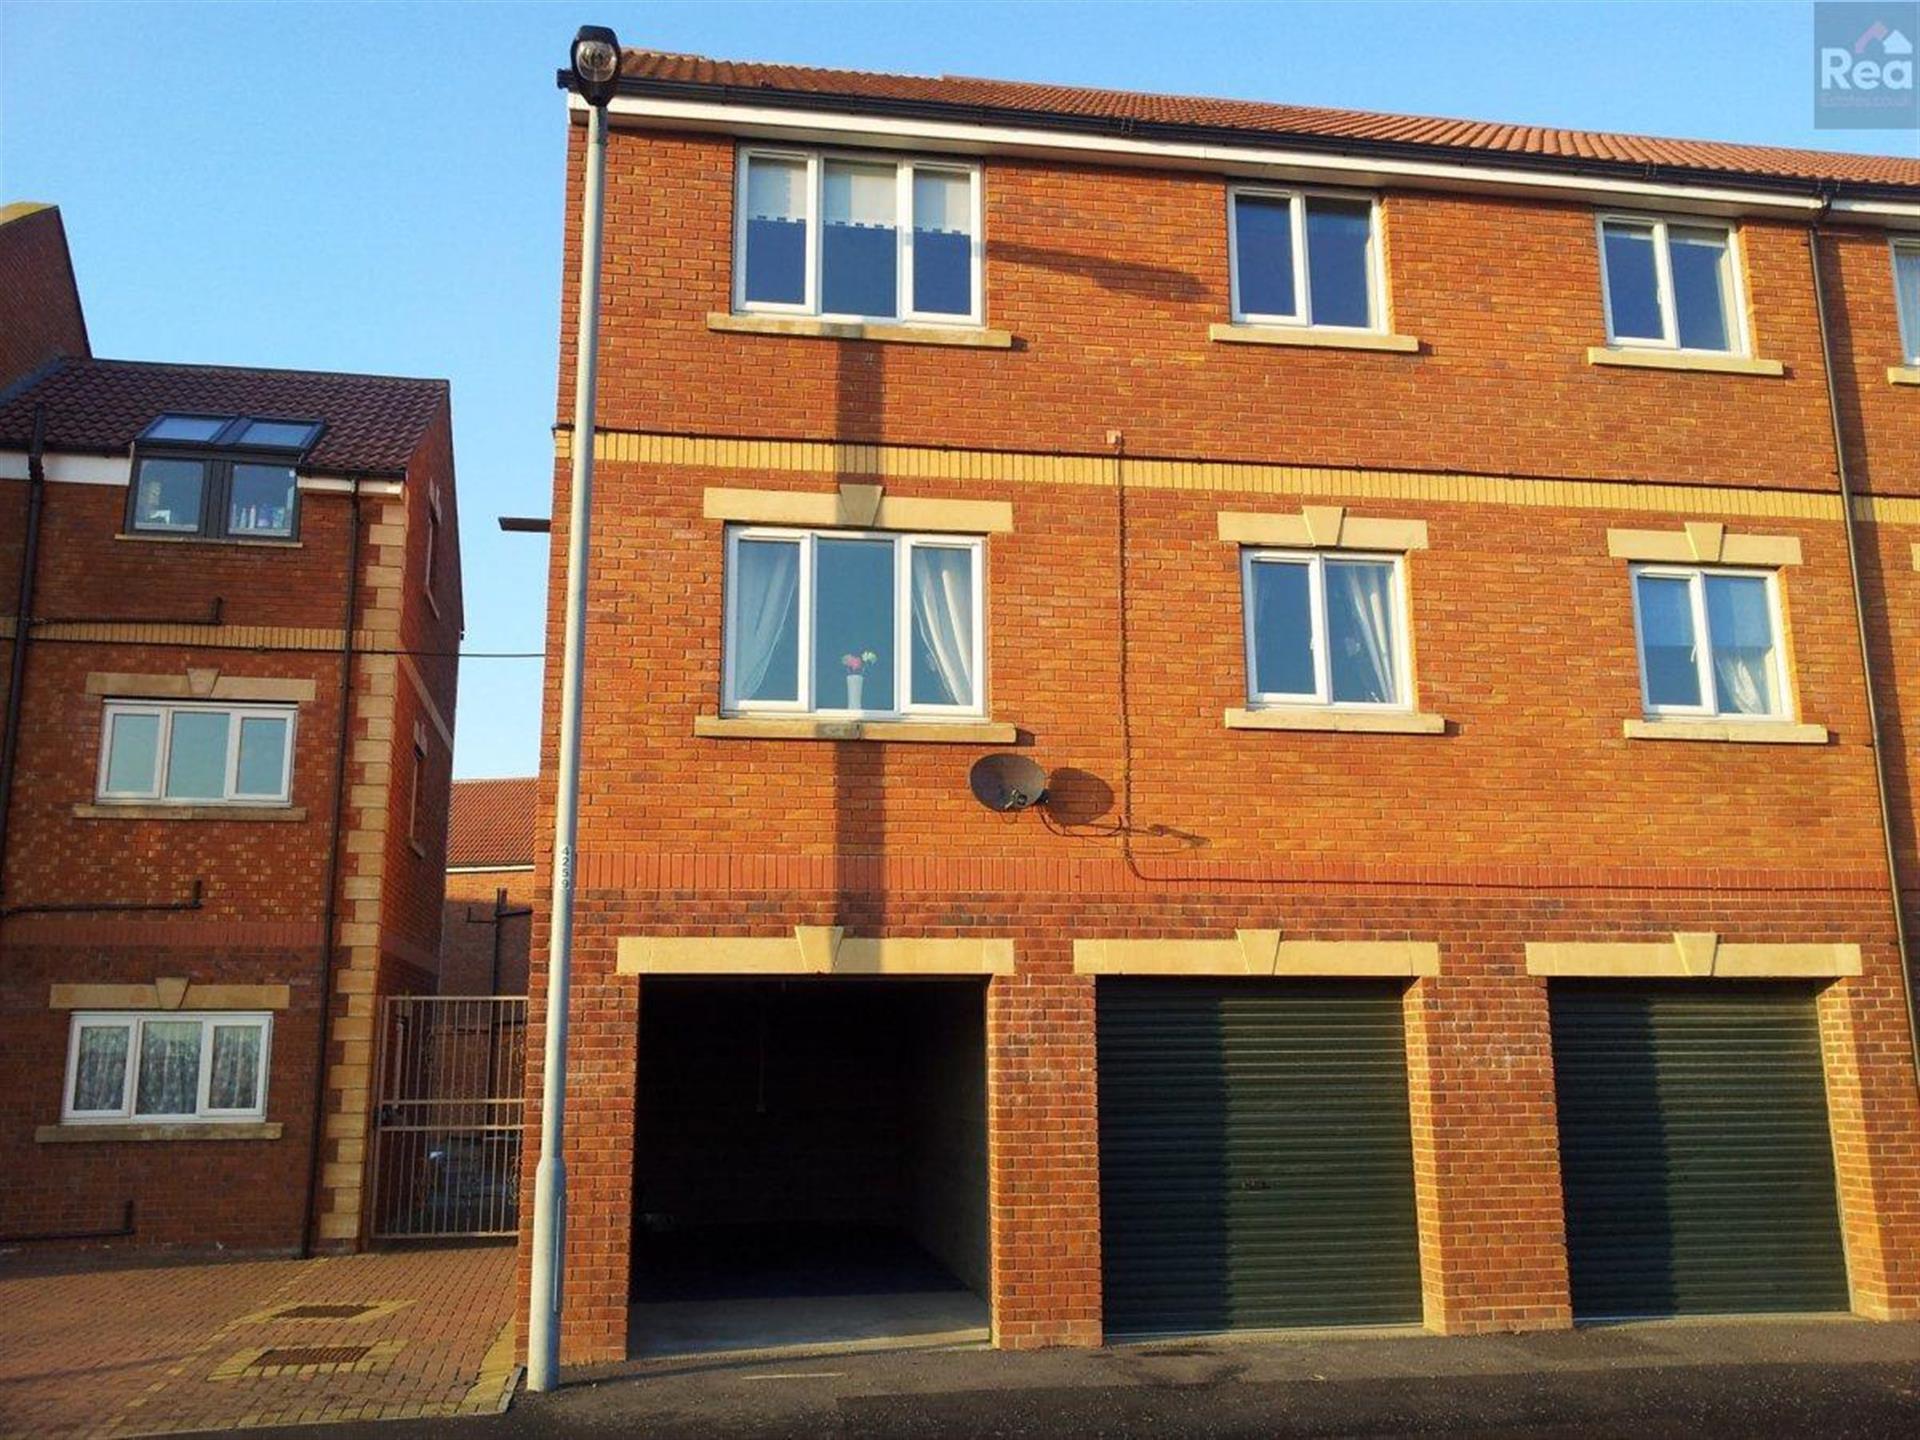 2 bedroom apartment flat / apartment Let Agreed in Bishop Auckland - photograph 1.